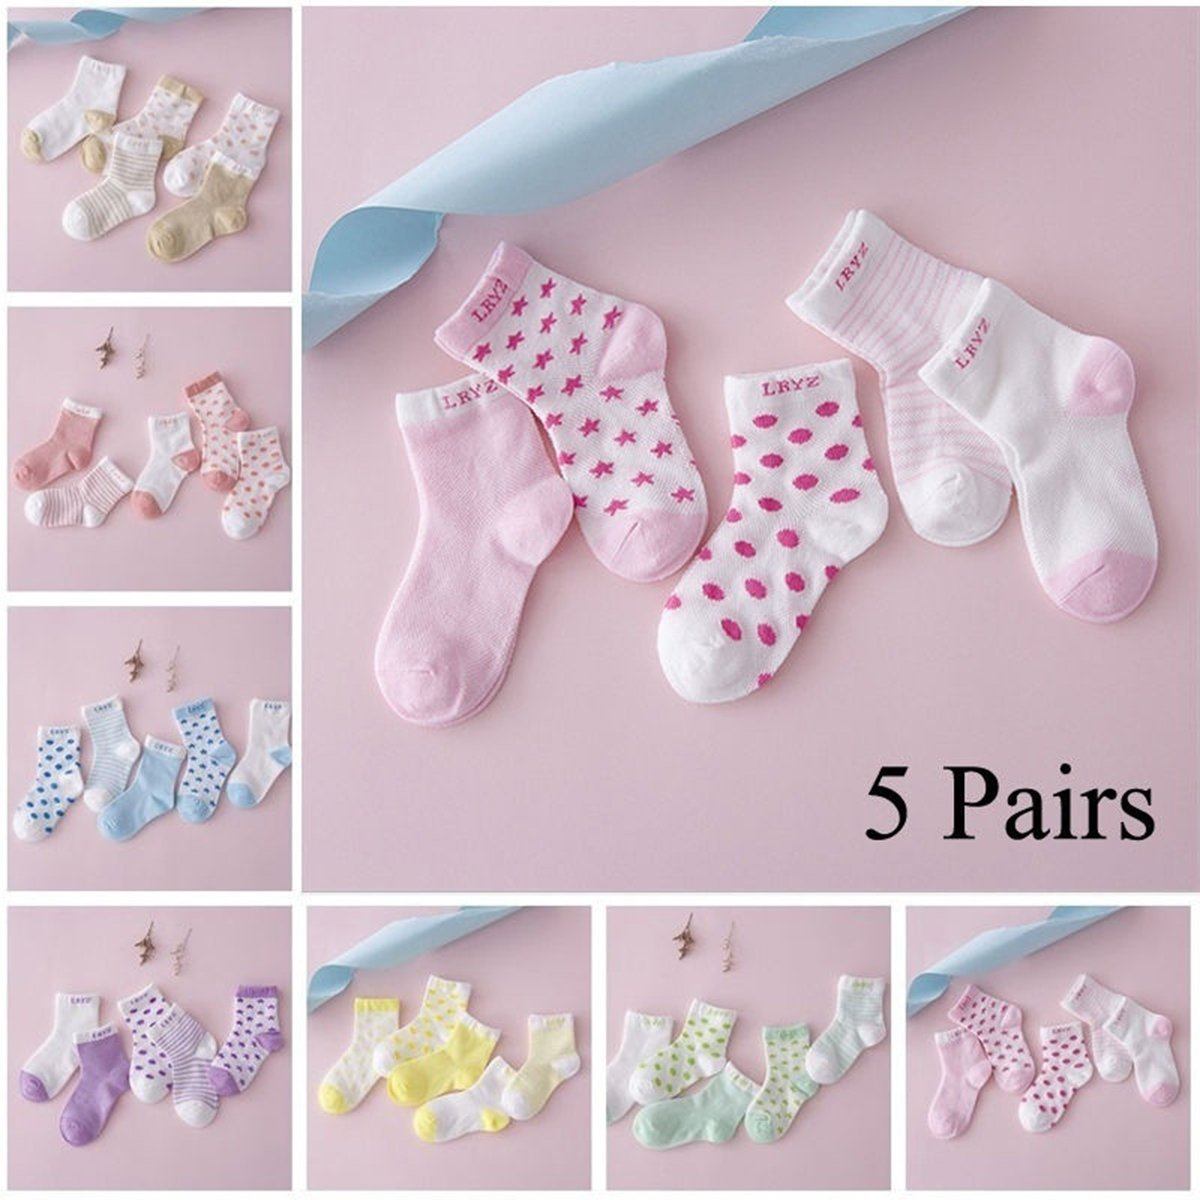 Watermelon Red LUOEM 5 Pairs of Unisex Baby Newborn Cotton Socks for 0-1 Year Old